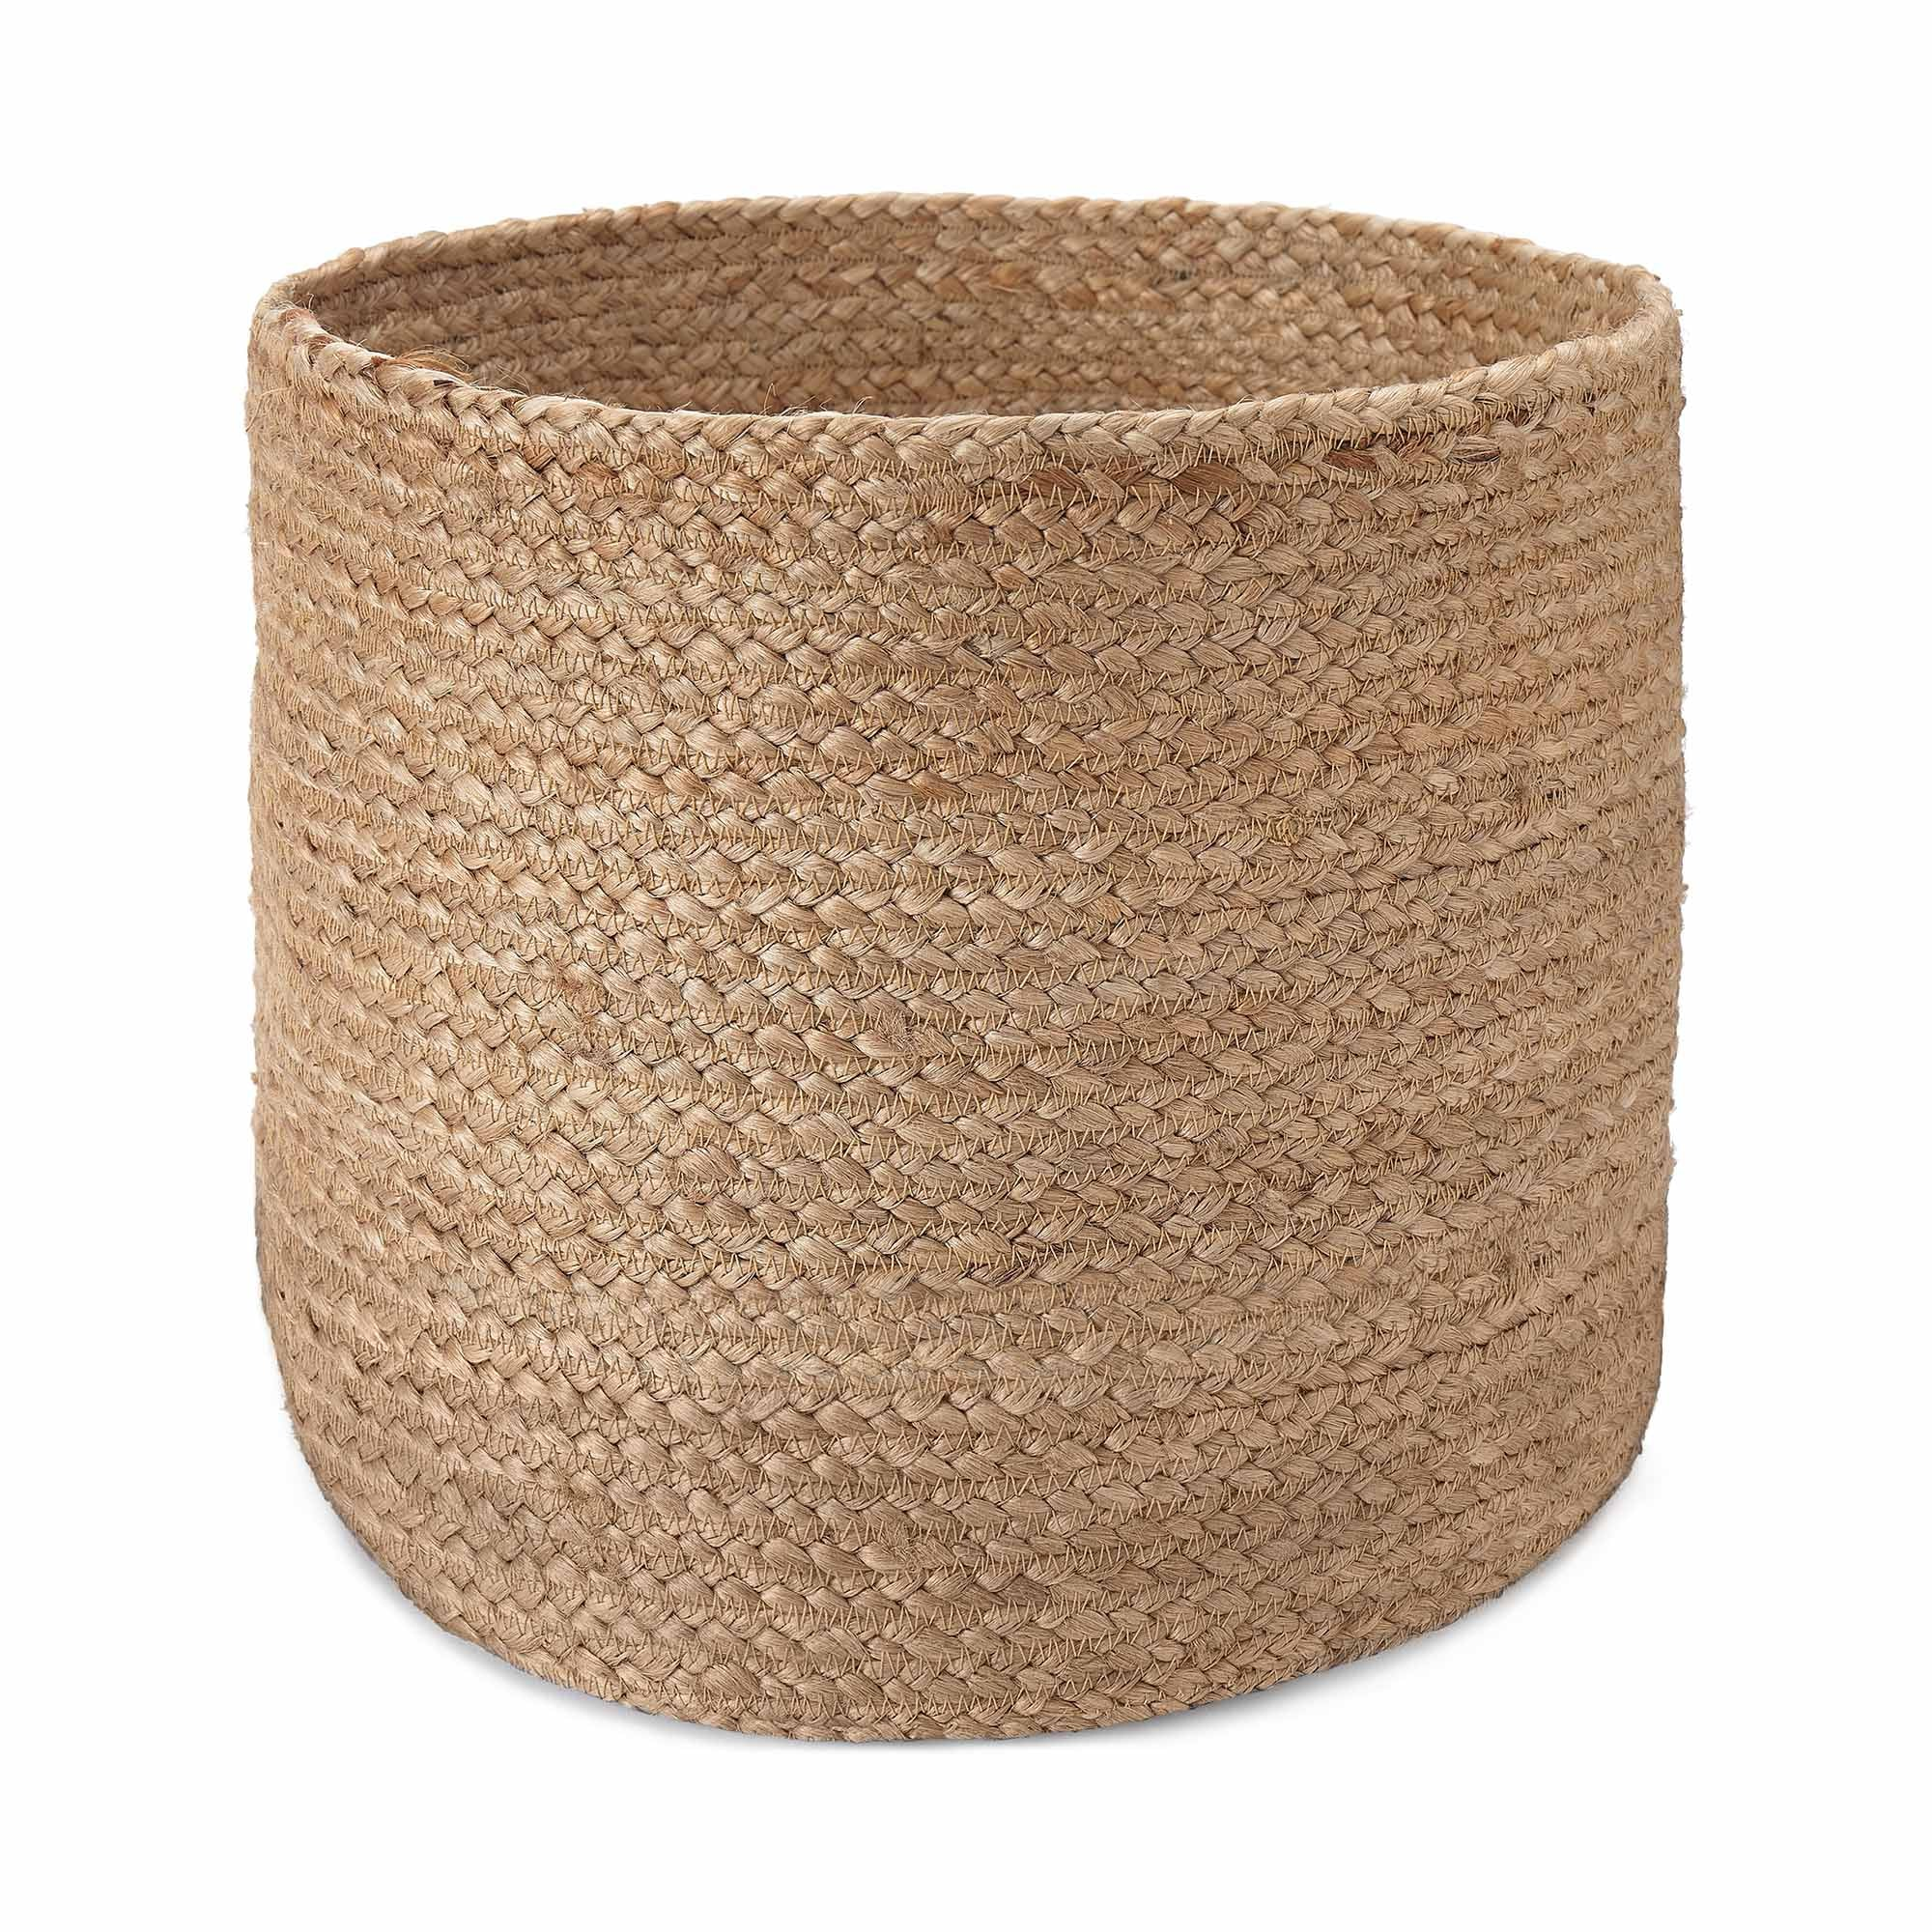 Chenab Basket natural, 100% jute